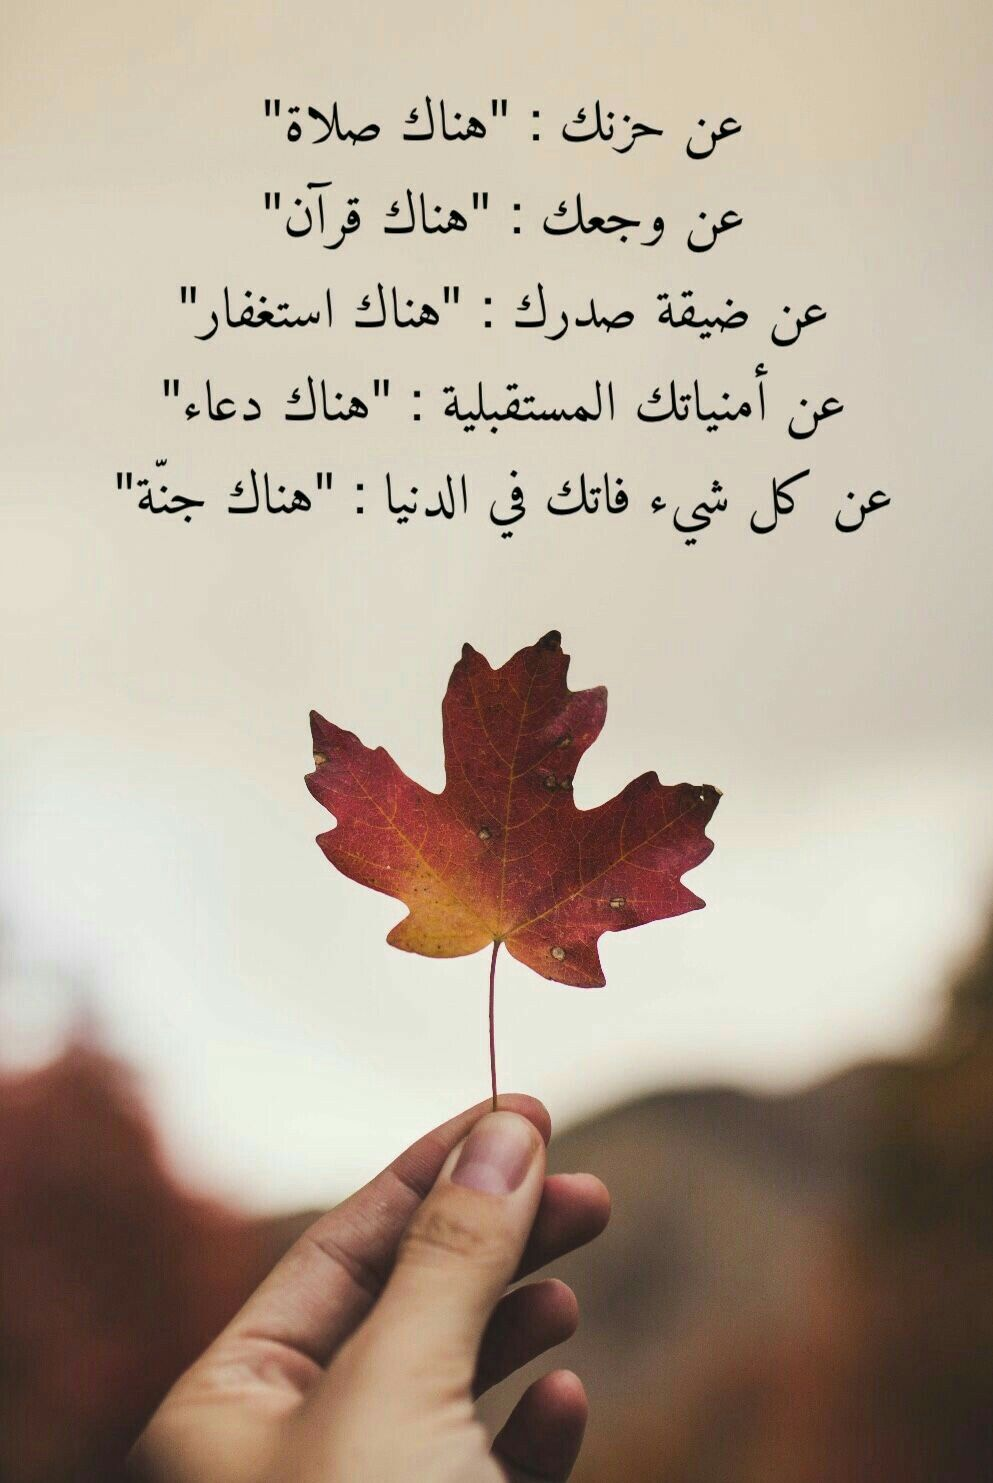 Pin By Lia Said On مواعظ خواطر إسلامية Islamic Quotes Quran Quotes Arabic Quotes With Translation